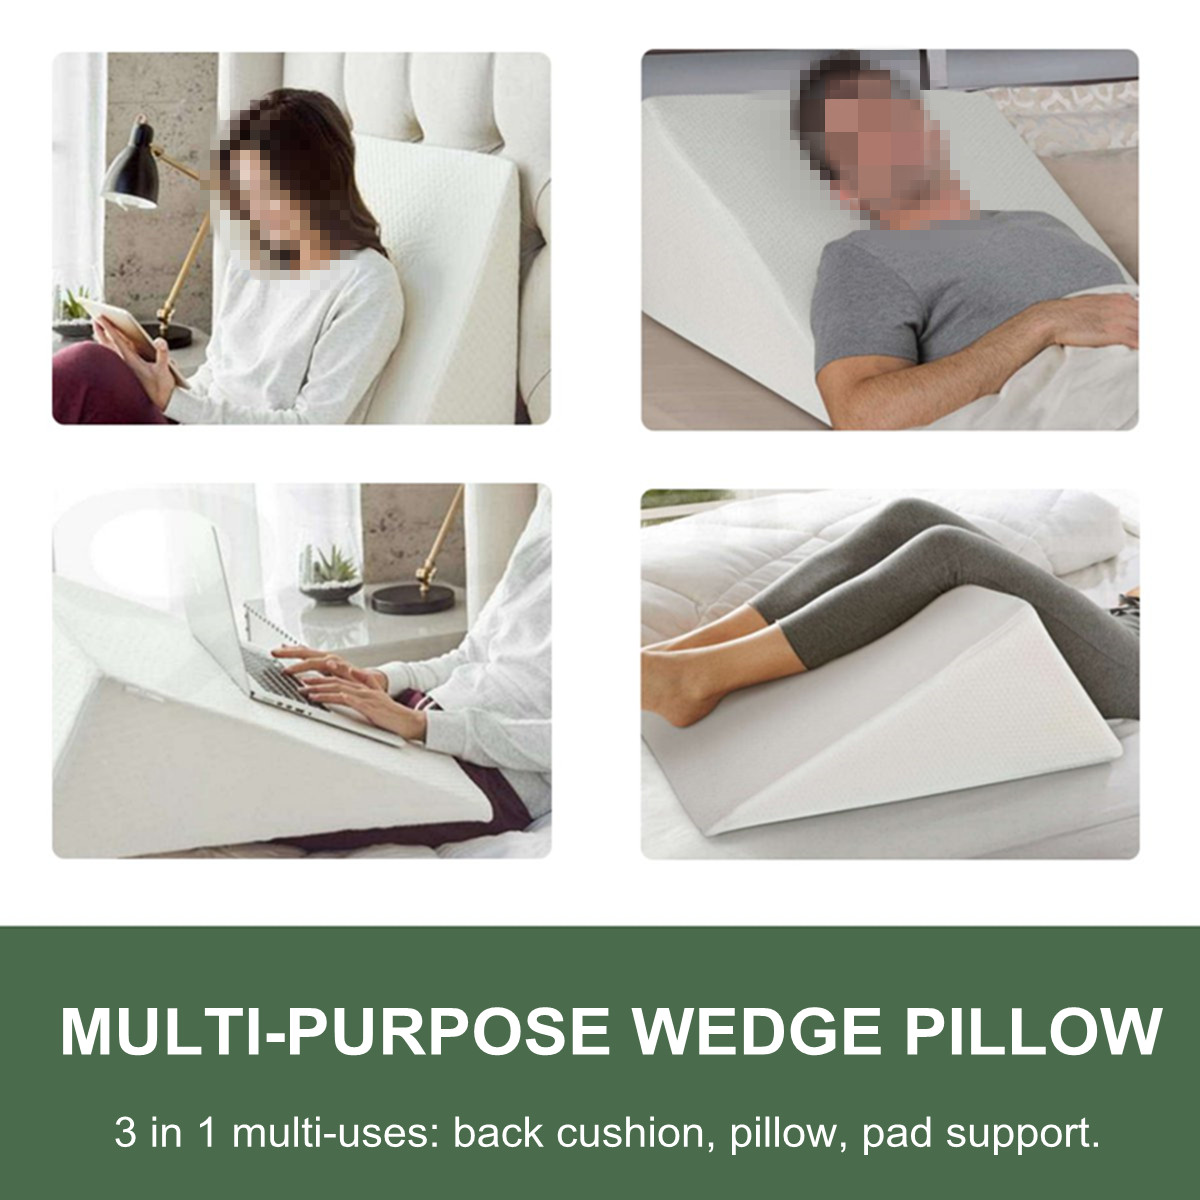 Triangle Bedding Wedge Pillow Cotton Sponge Cushion Multifunctional Neck Back Body Support Cushion Pad Home Hospital